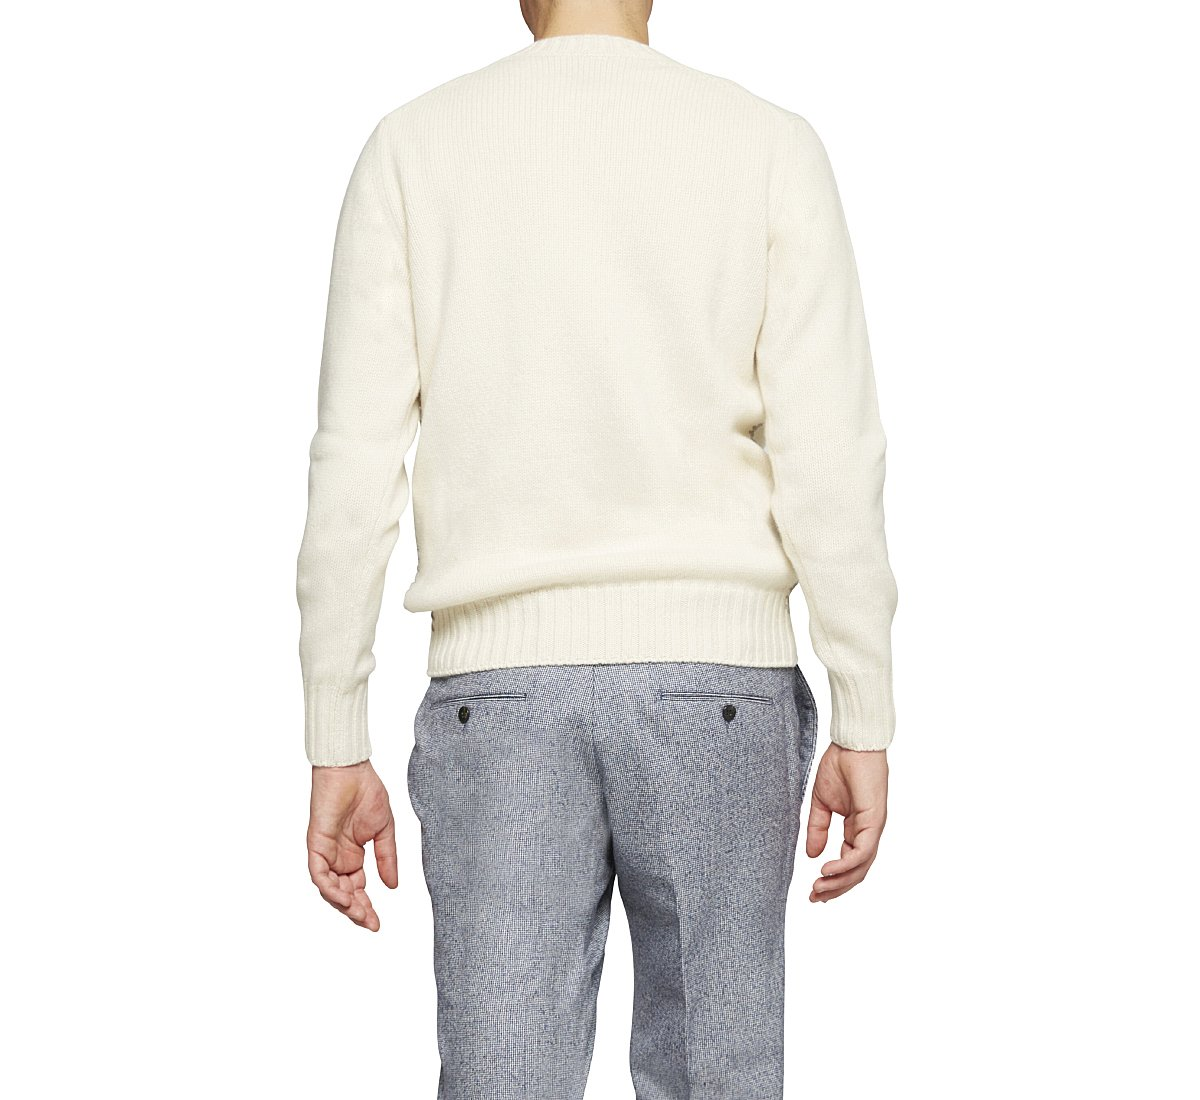 High-quality cashmere jersey